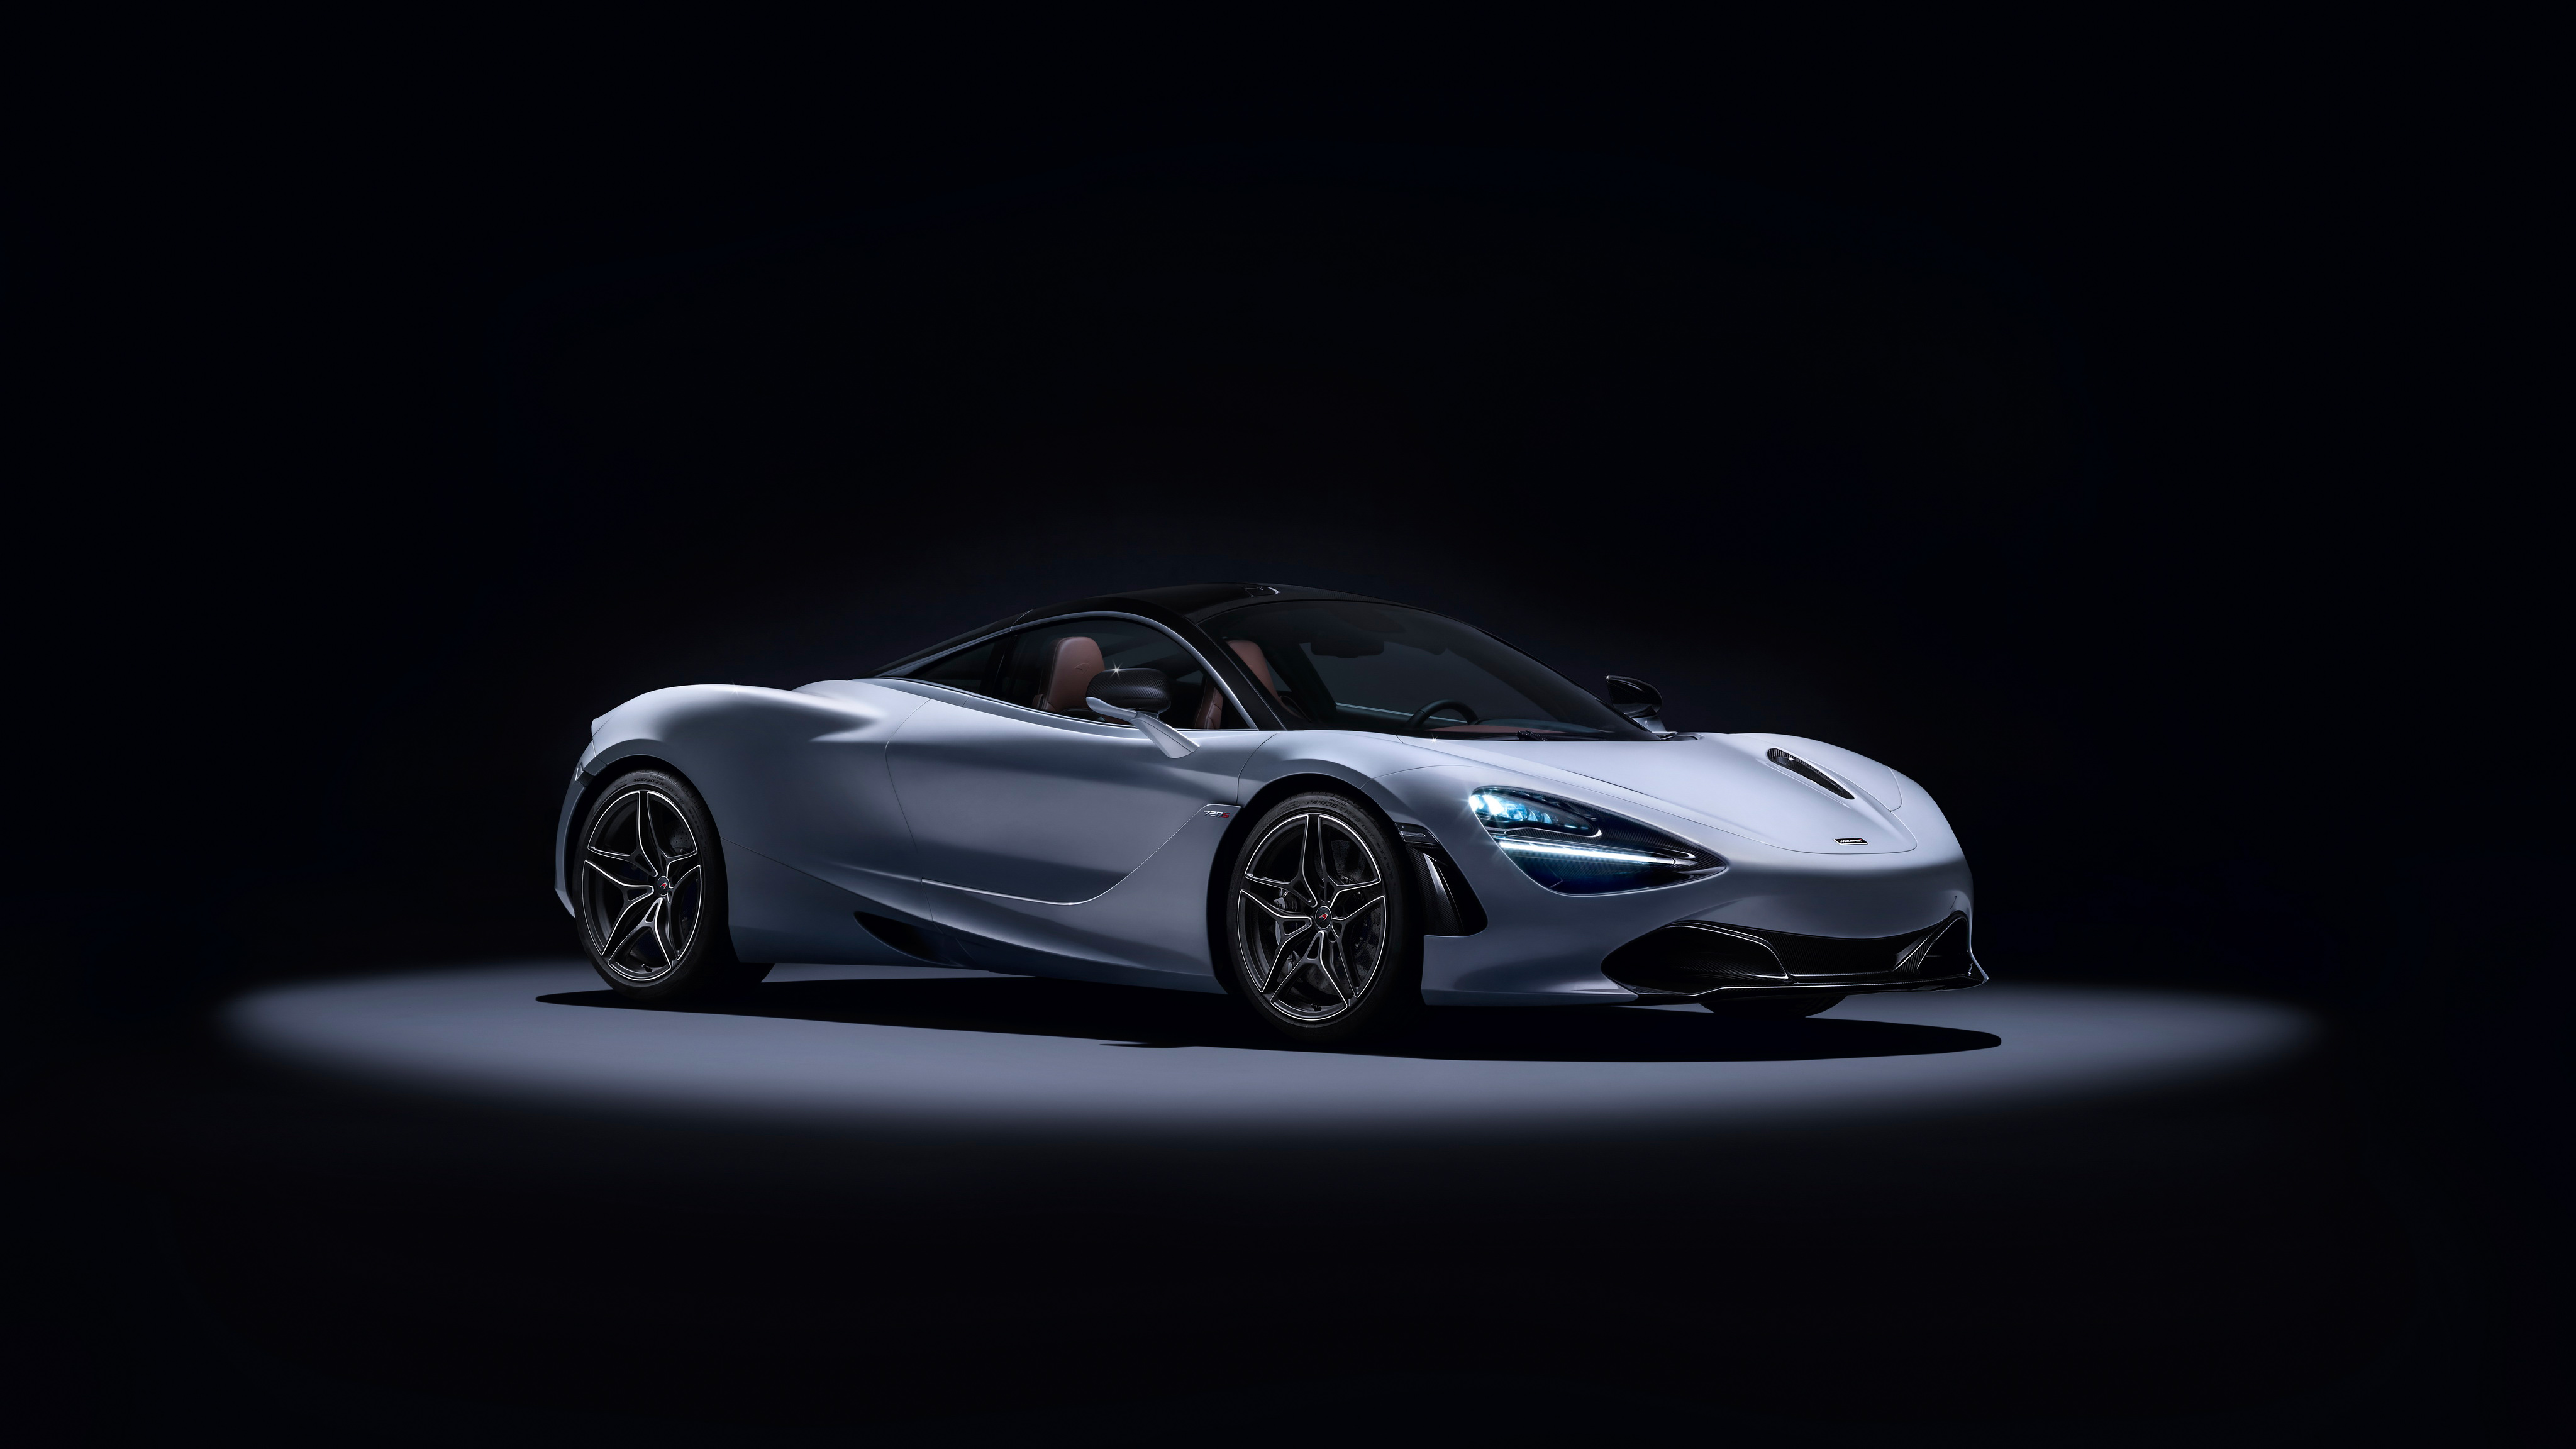 2017 Mclaren 720s Coupe Wallpaper Hd Car Wallpapers Id